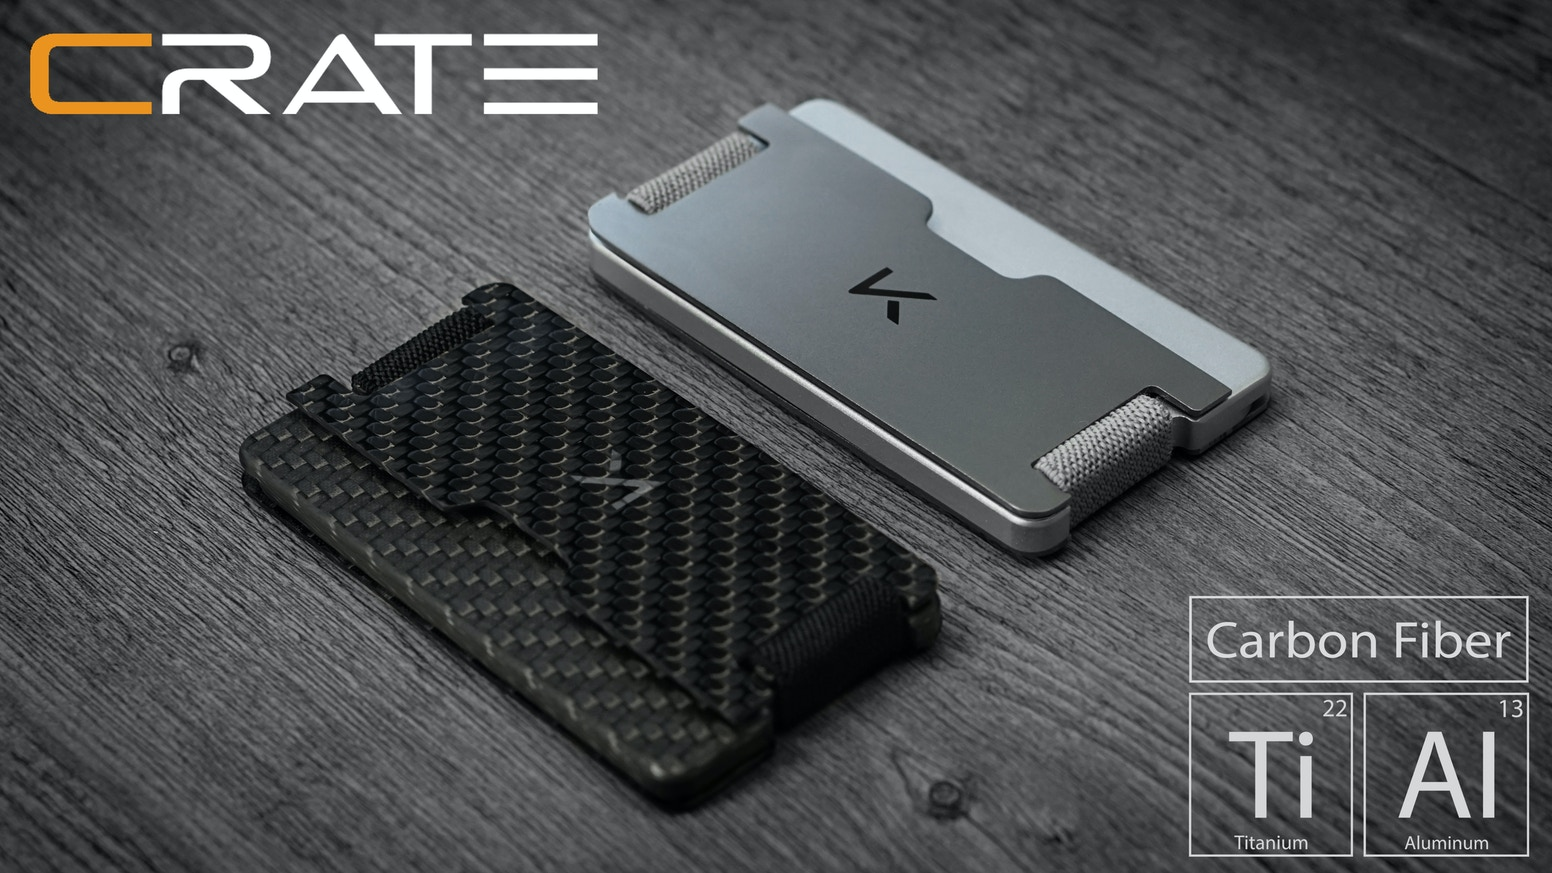 CRATE - Titanium | Carbon Fiber Multi-Mode Wallet by Narbeh Khoygani ...